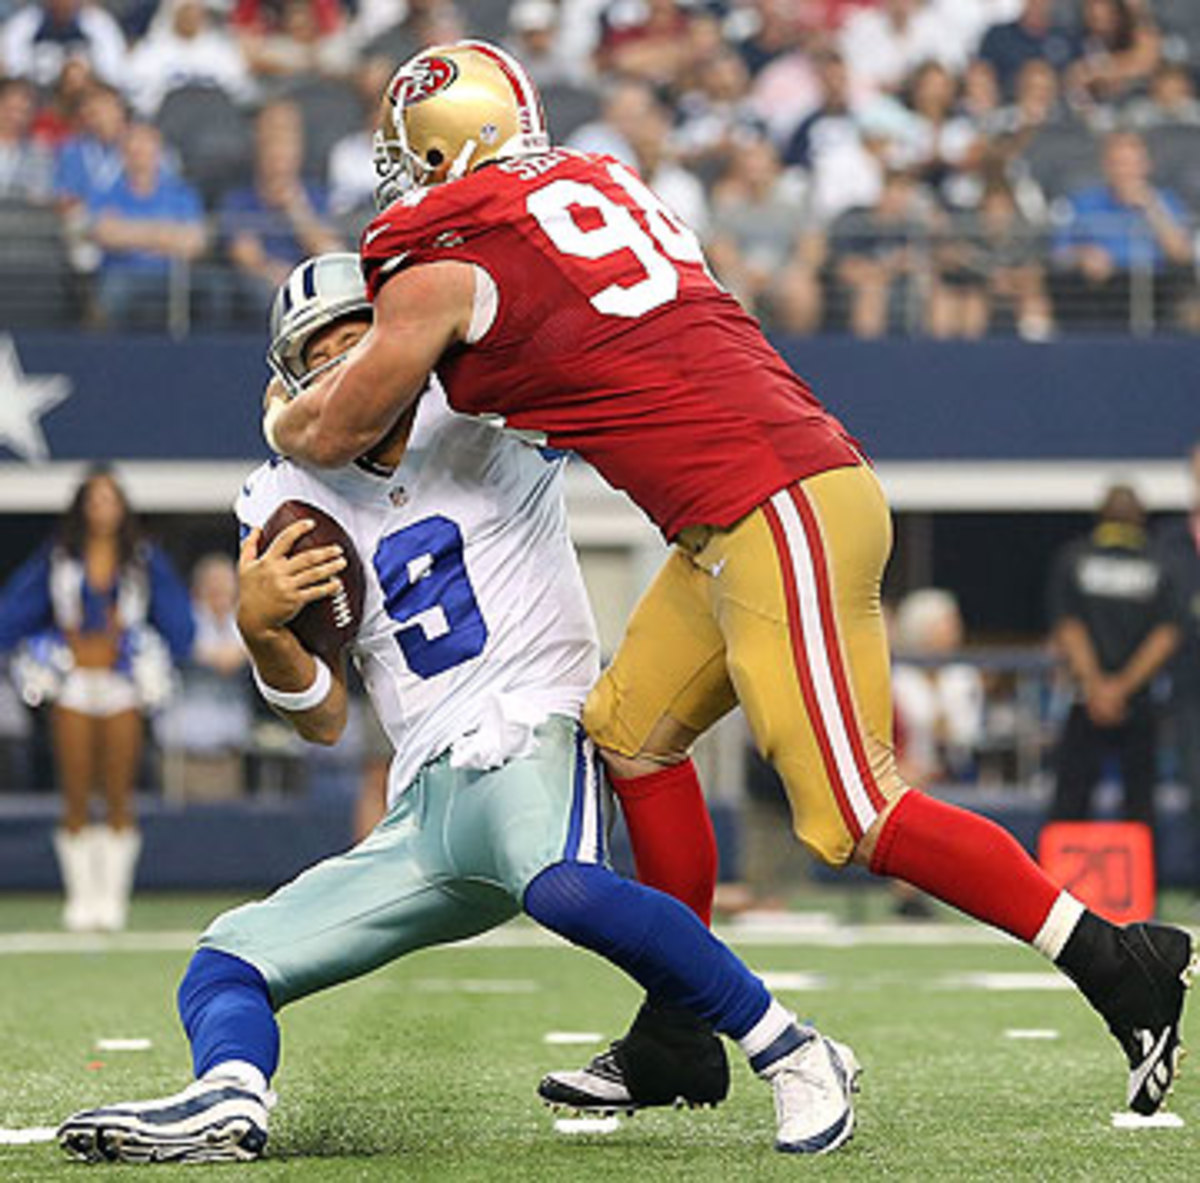 Tony Romo was sacked three times Sunday, twice by Justin Smith. (Christian Petersen/Getty Images)